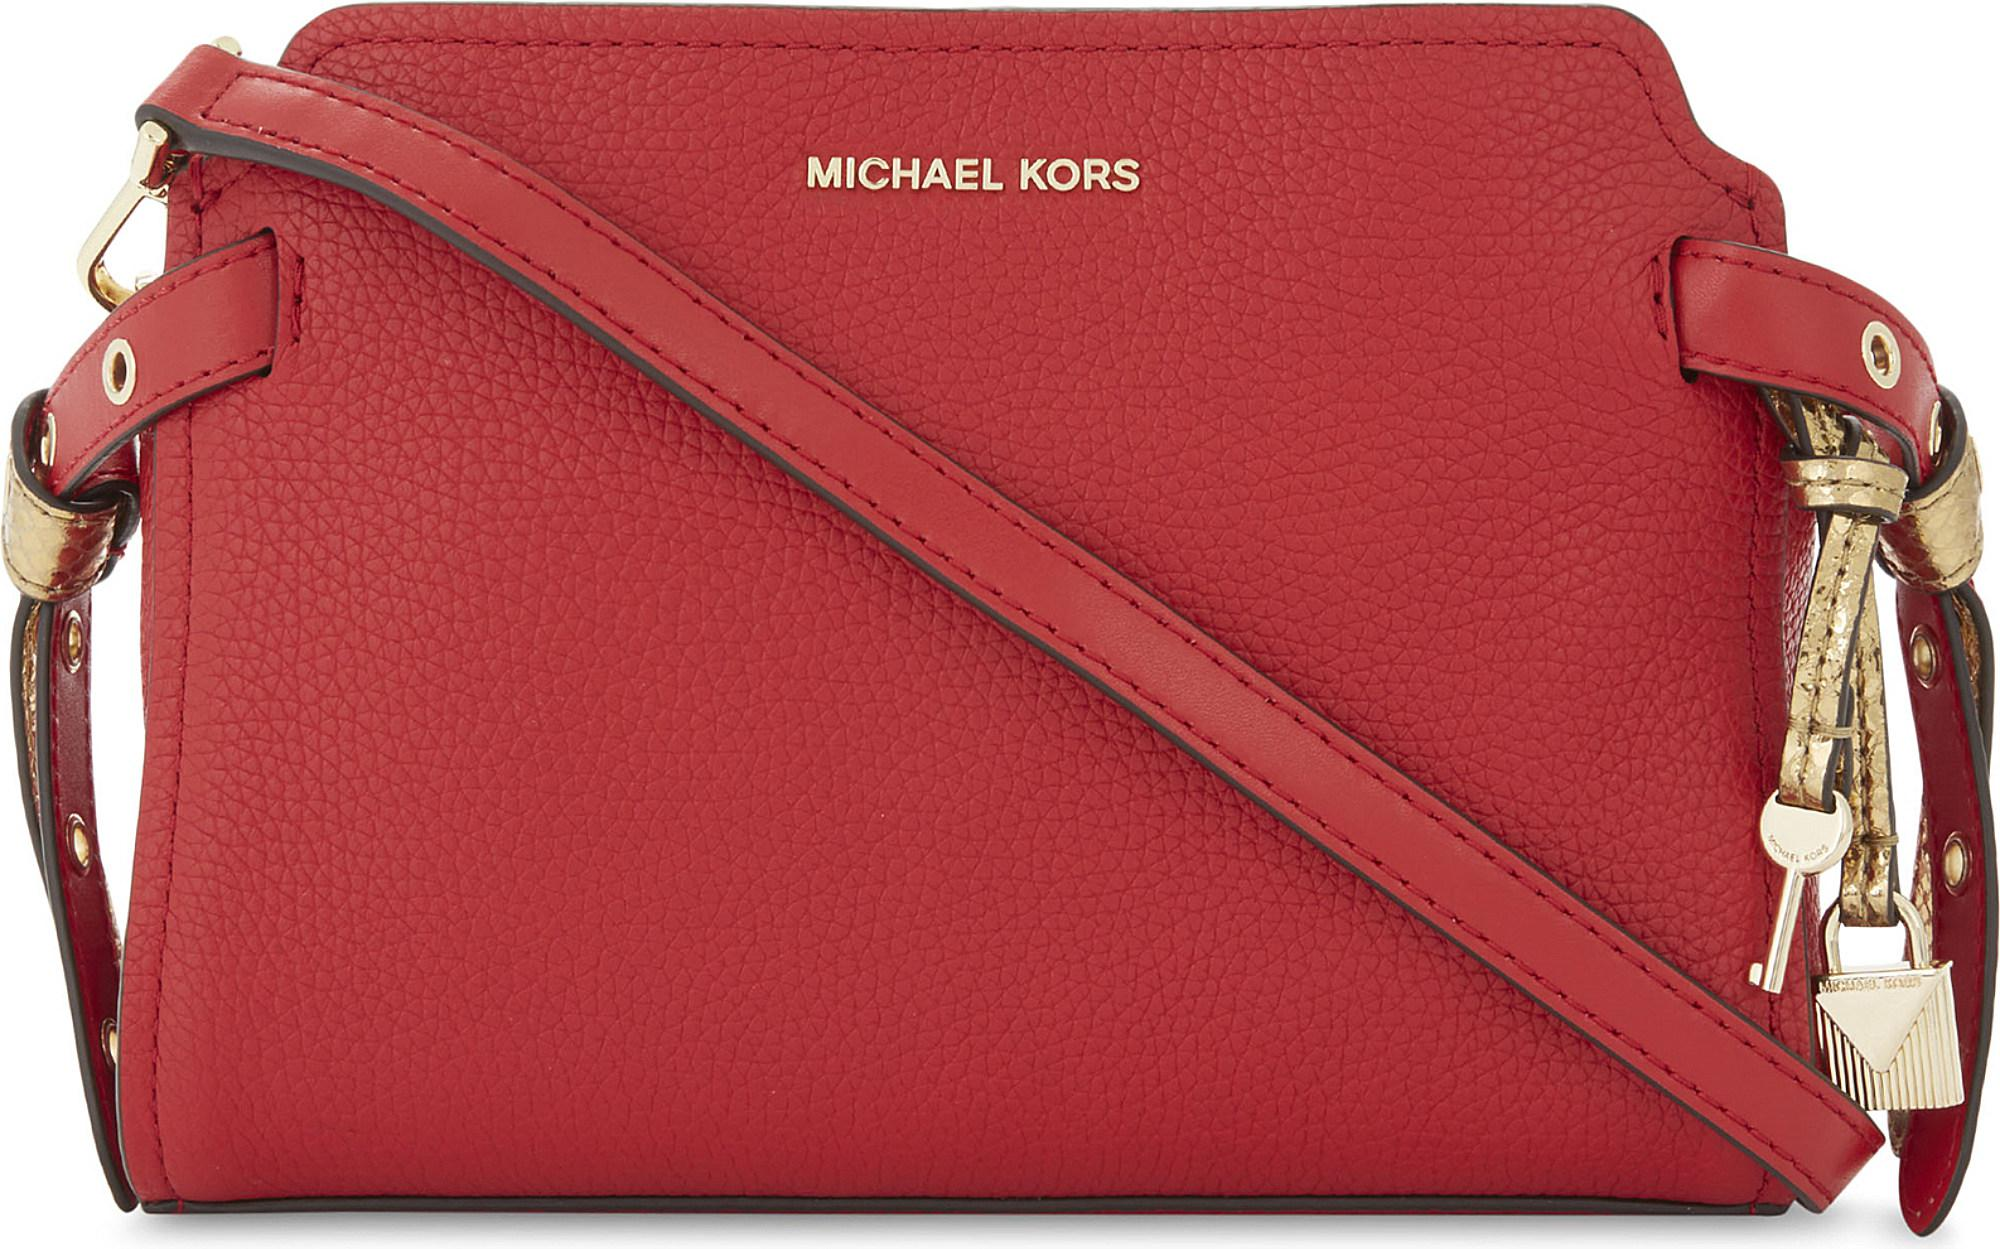 7229c64daf813 wholesale lyst michael michael kors bristol leather messenger bag in red  b58fd e8926